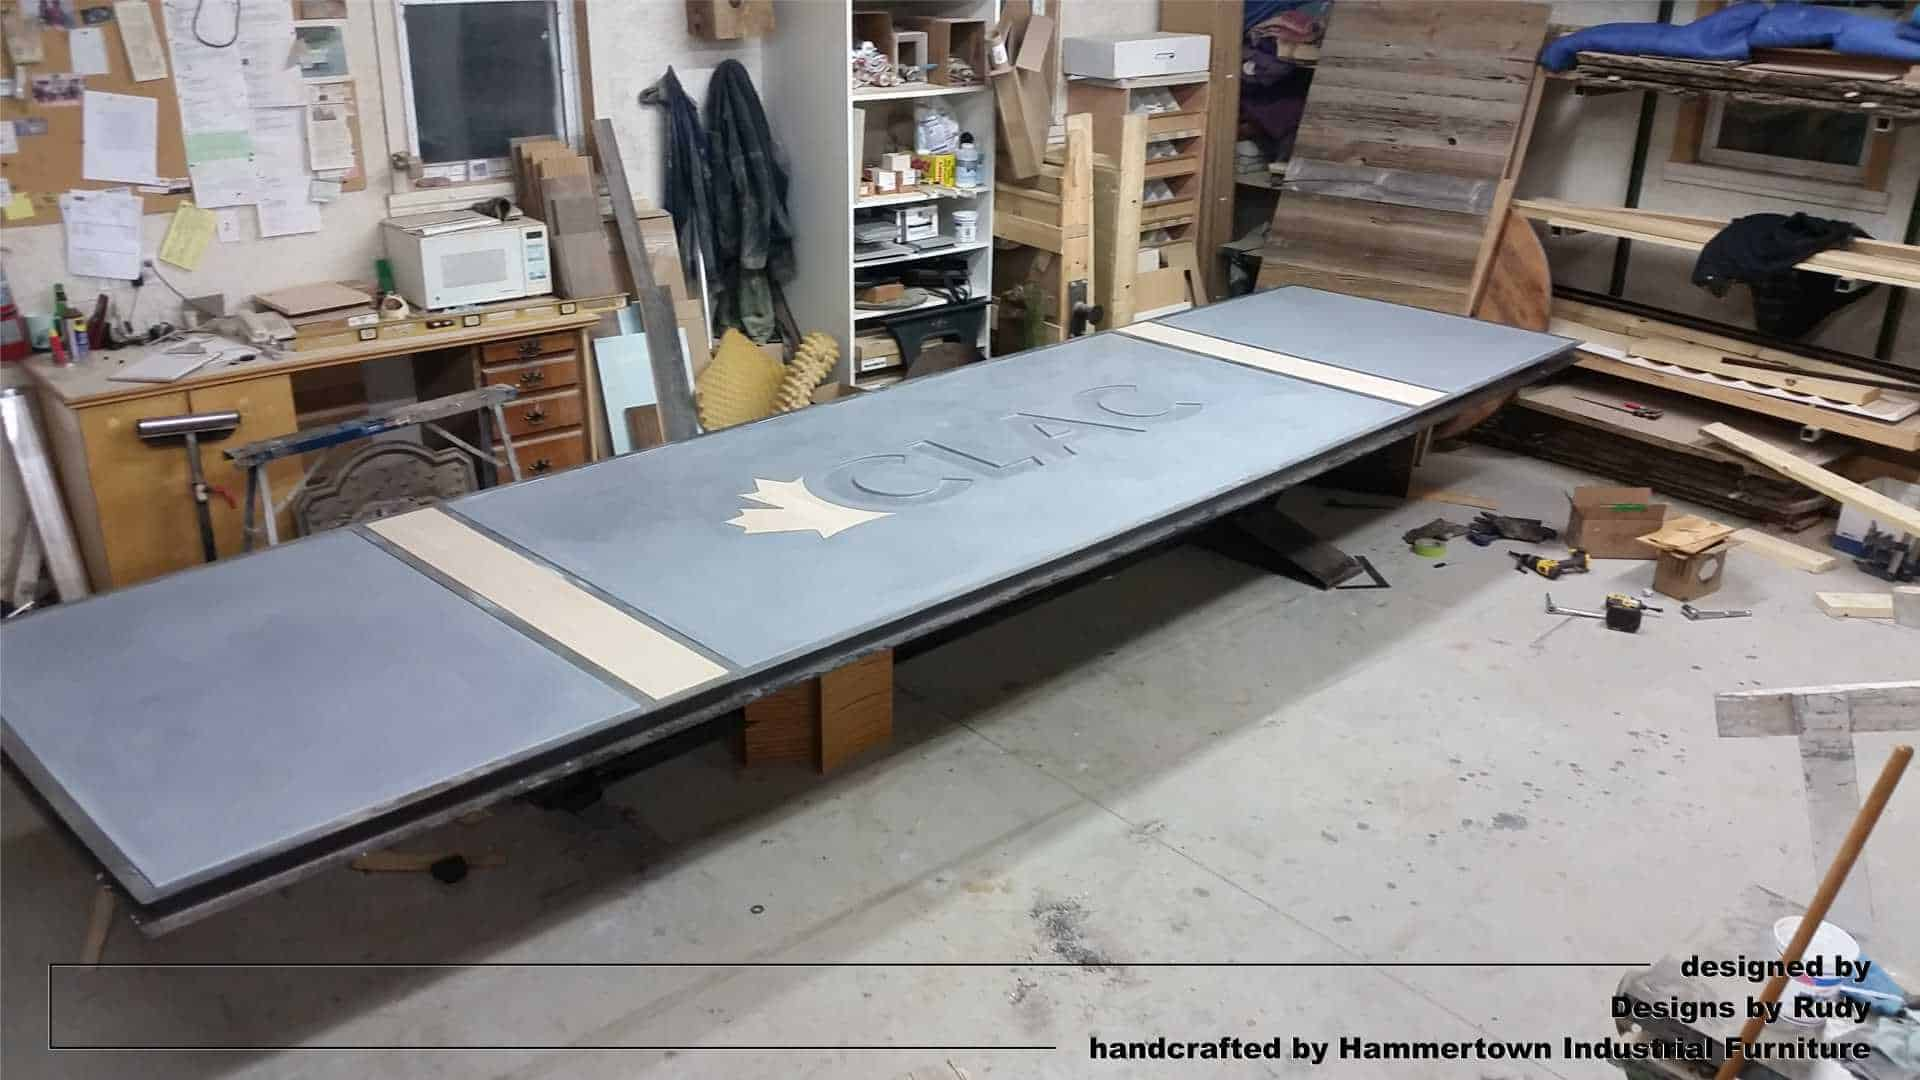 Concrete top and steel frame conference room table designed by Desings by Rudy unfinished table assembled